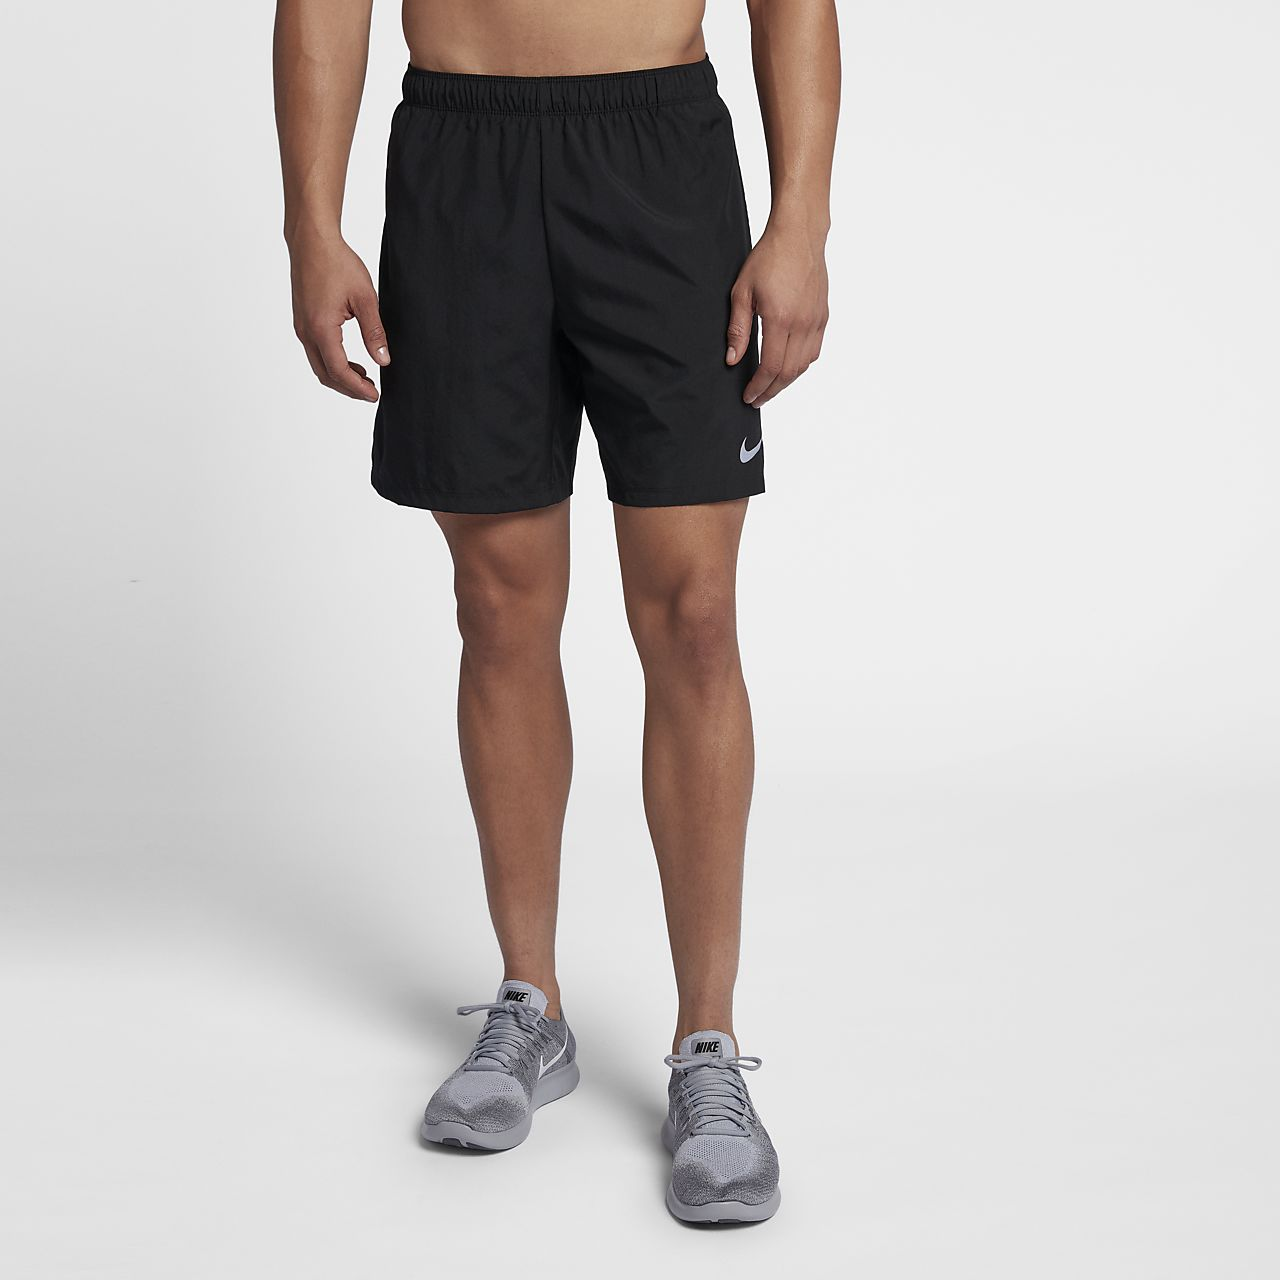 ae3086f01bf5 Lined Running Shorts Nike Challenger Men s 7